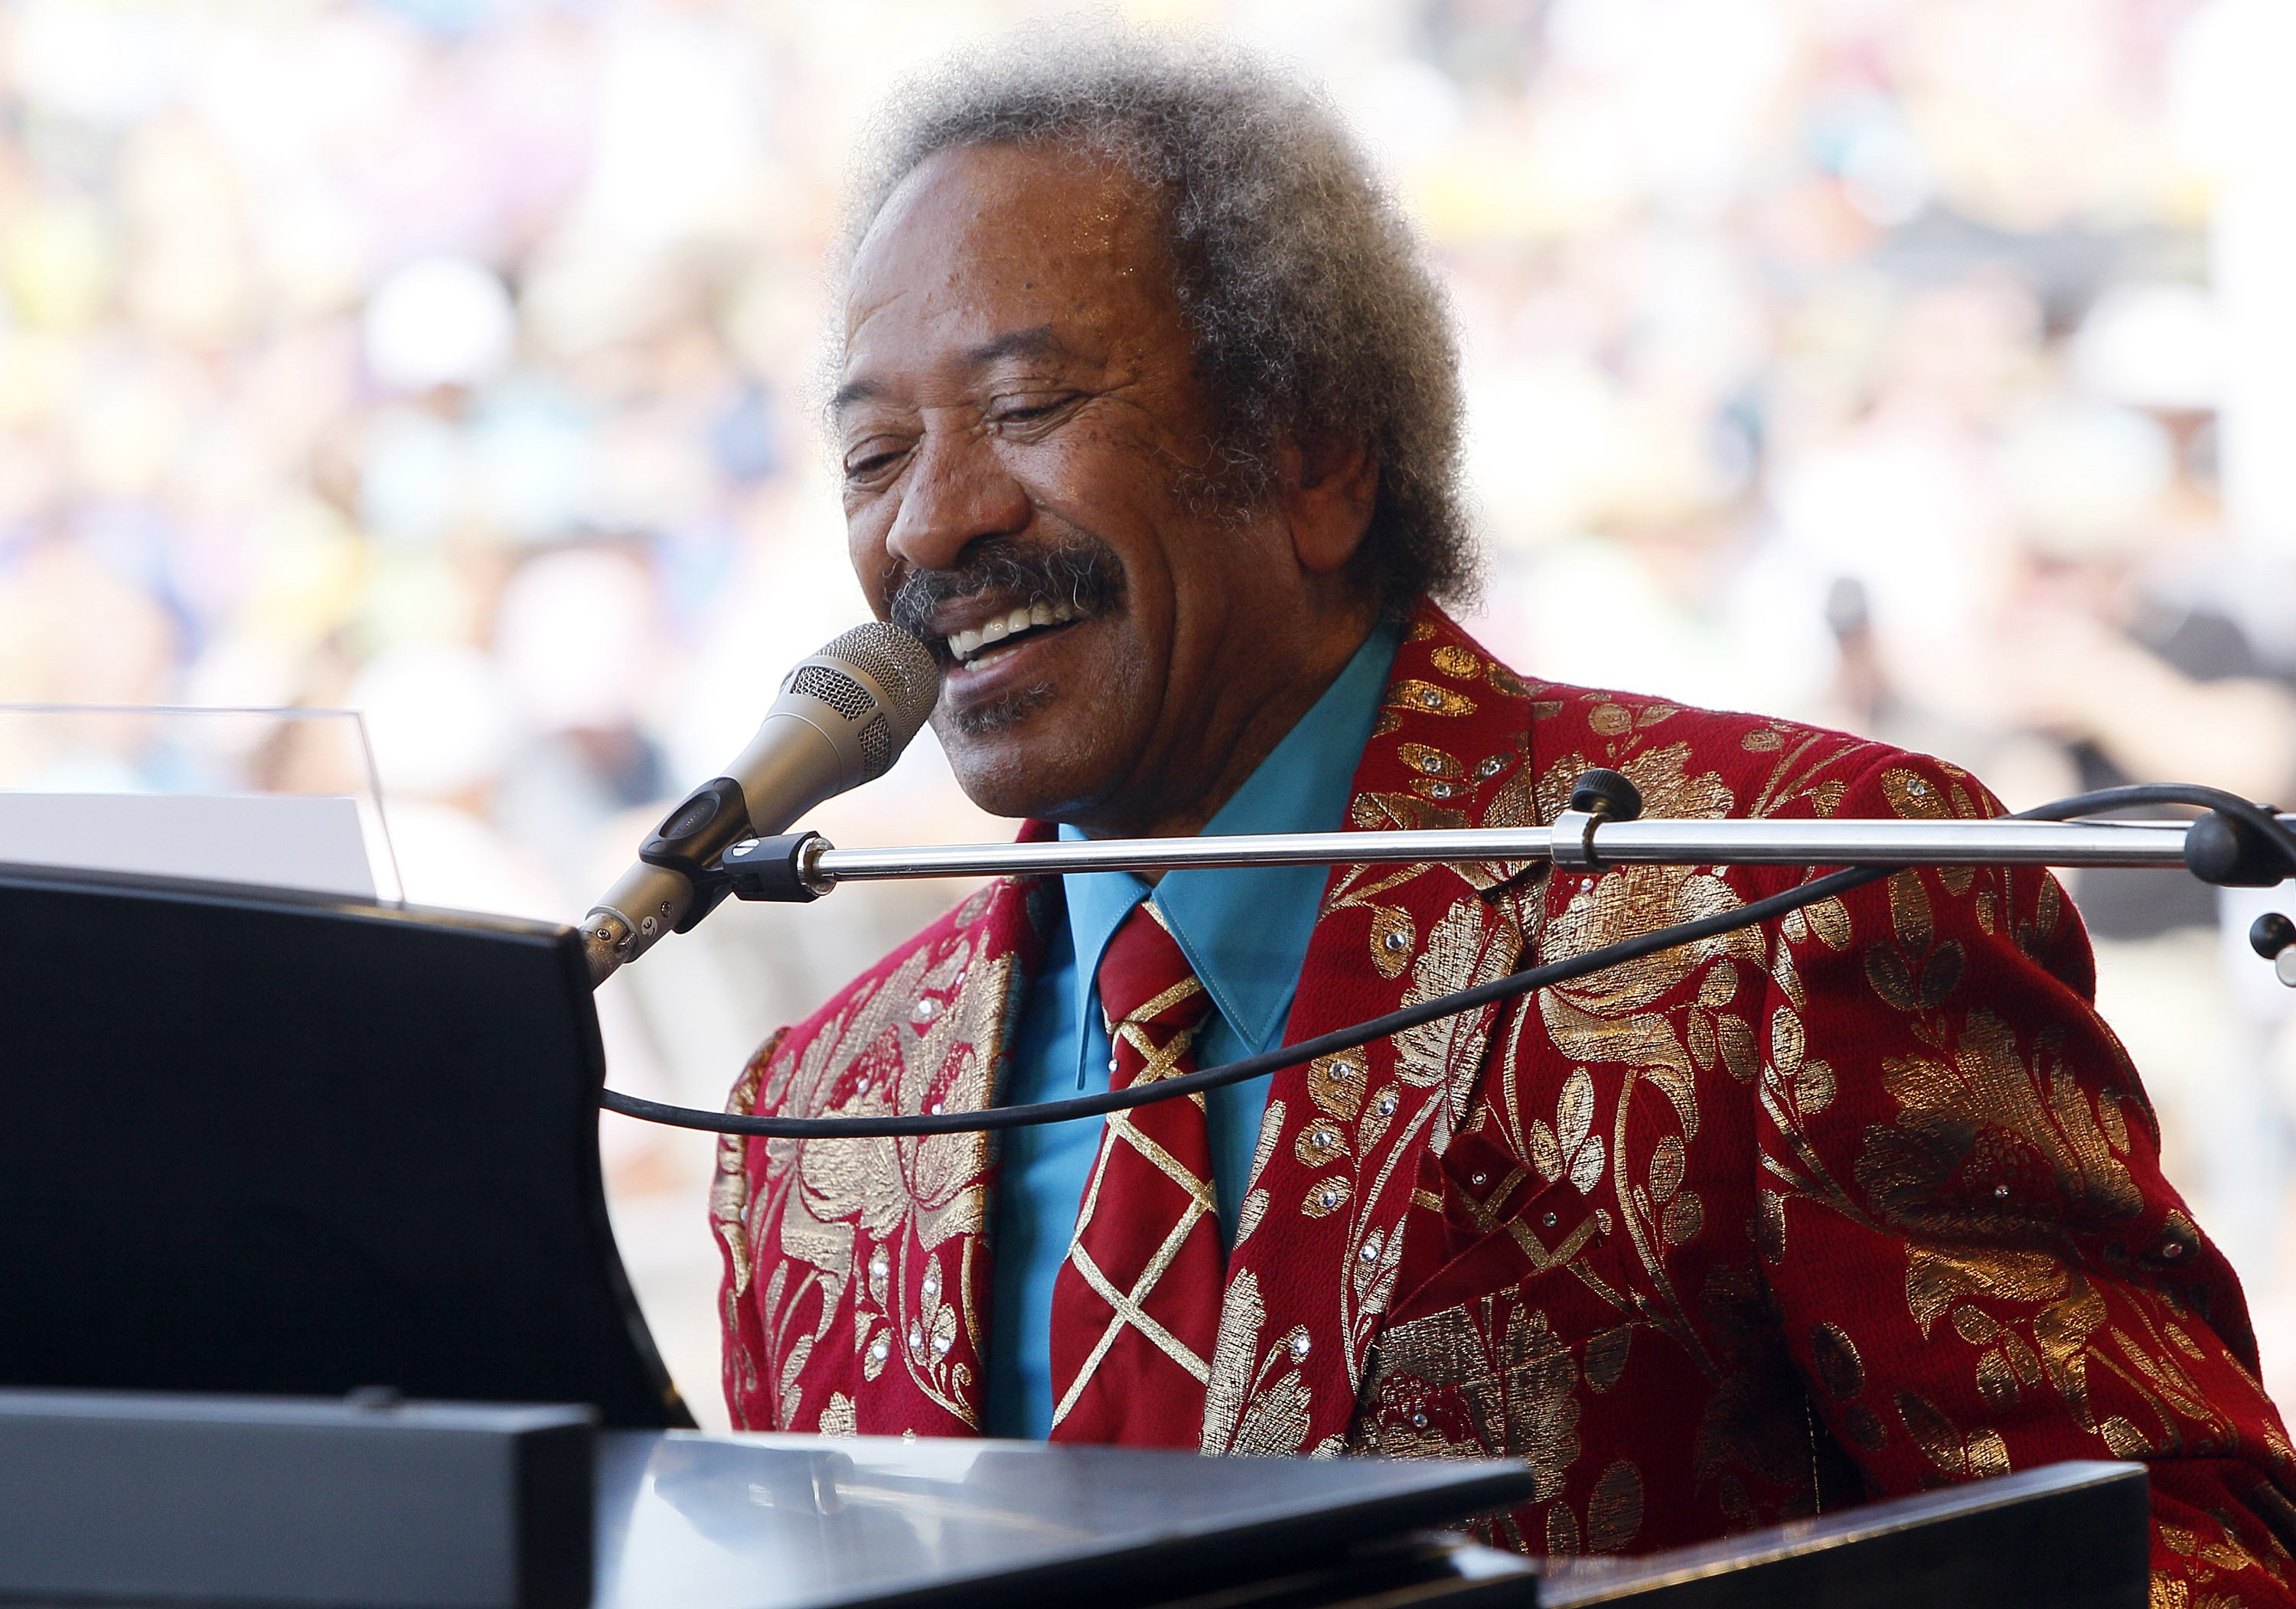 Toussaint performs at theNew Orleans Jazz and Heritage Festival in New Orleans on May 7, 2011.